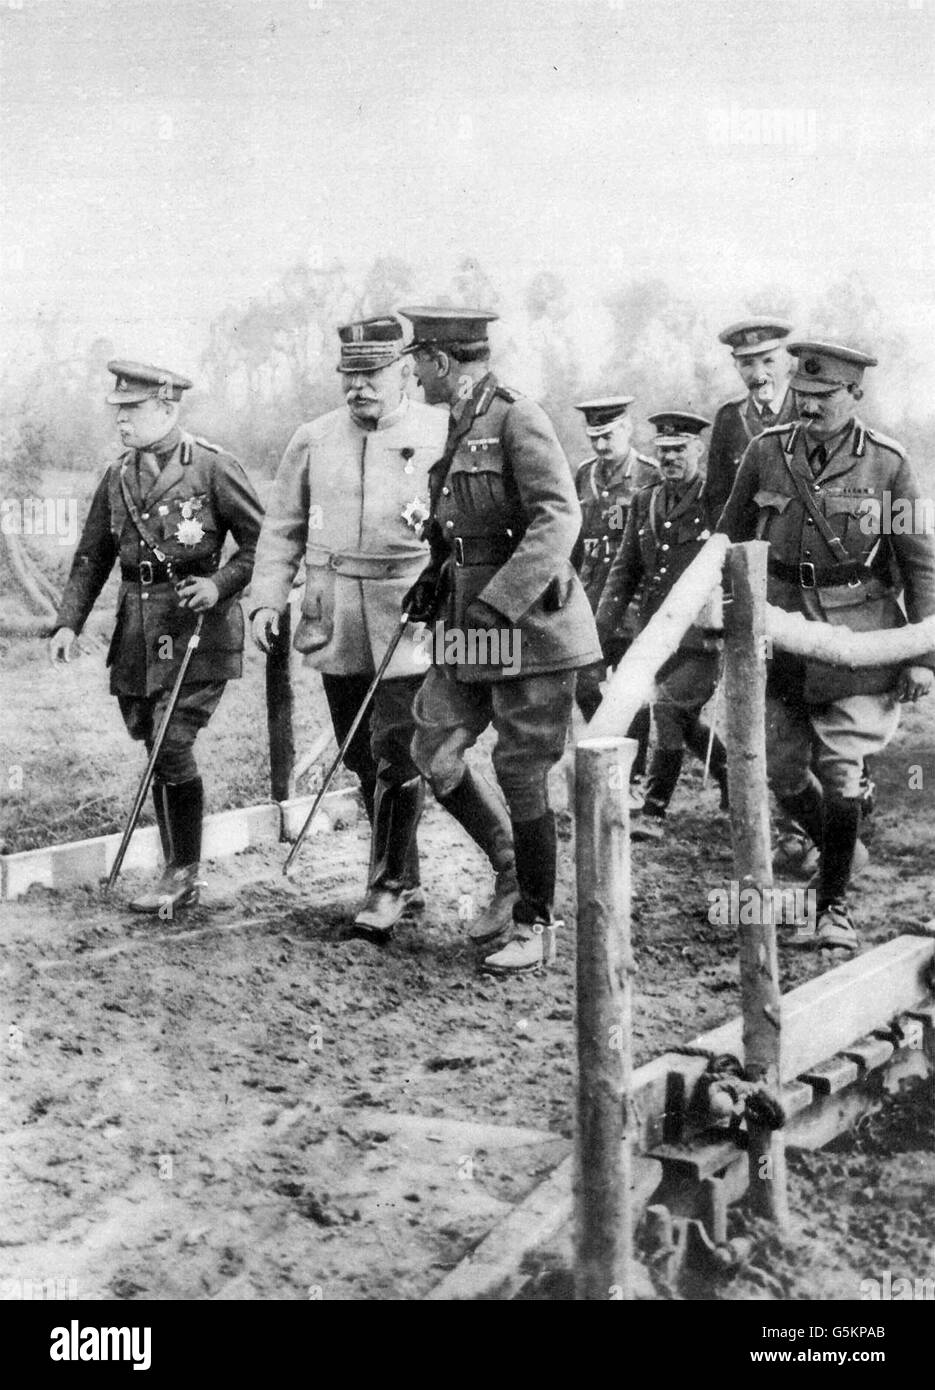 Generals French, Joffre and Haig at the Front during World War One - Stock Image